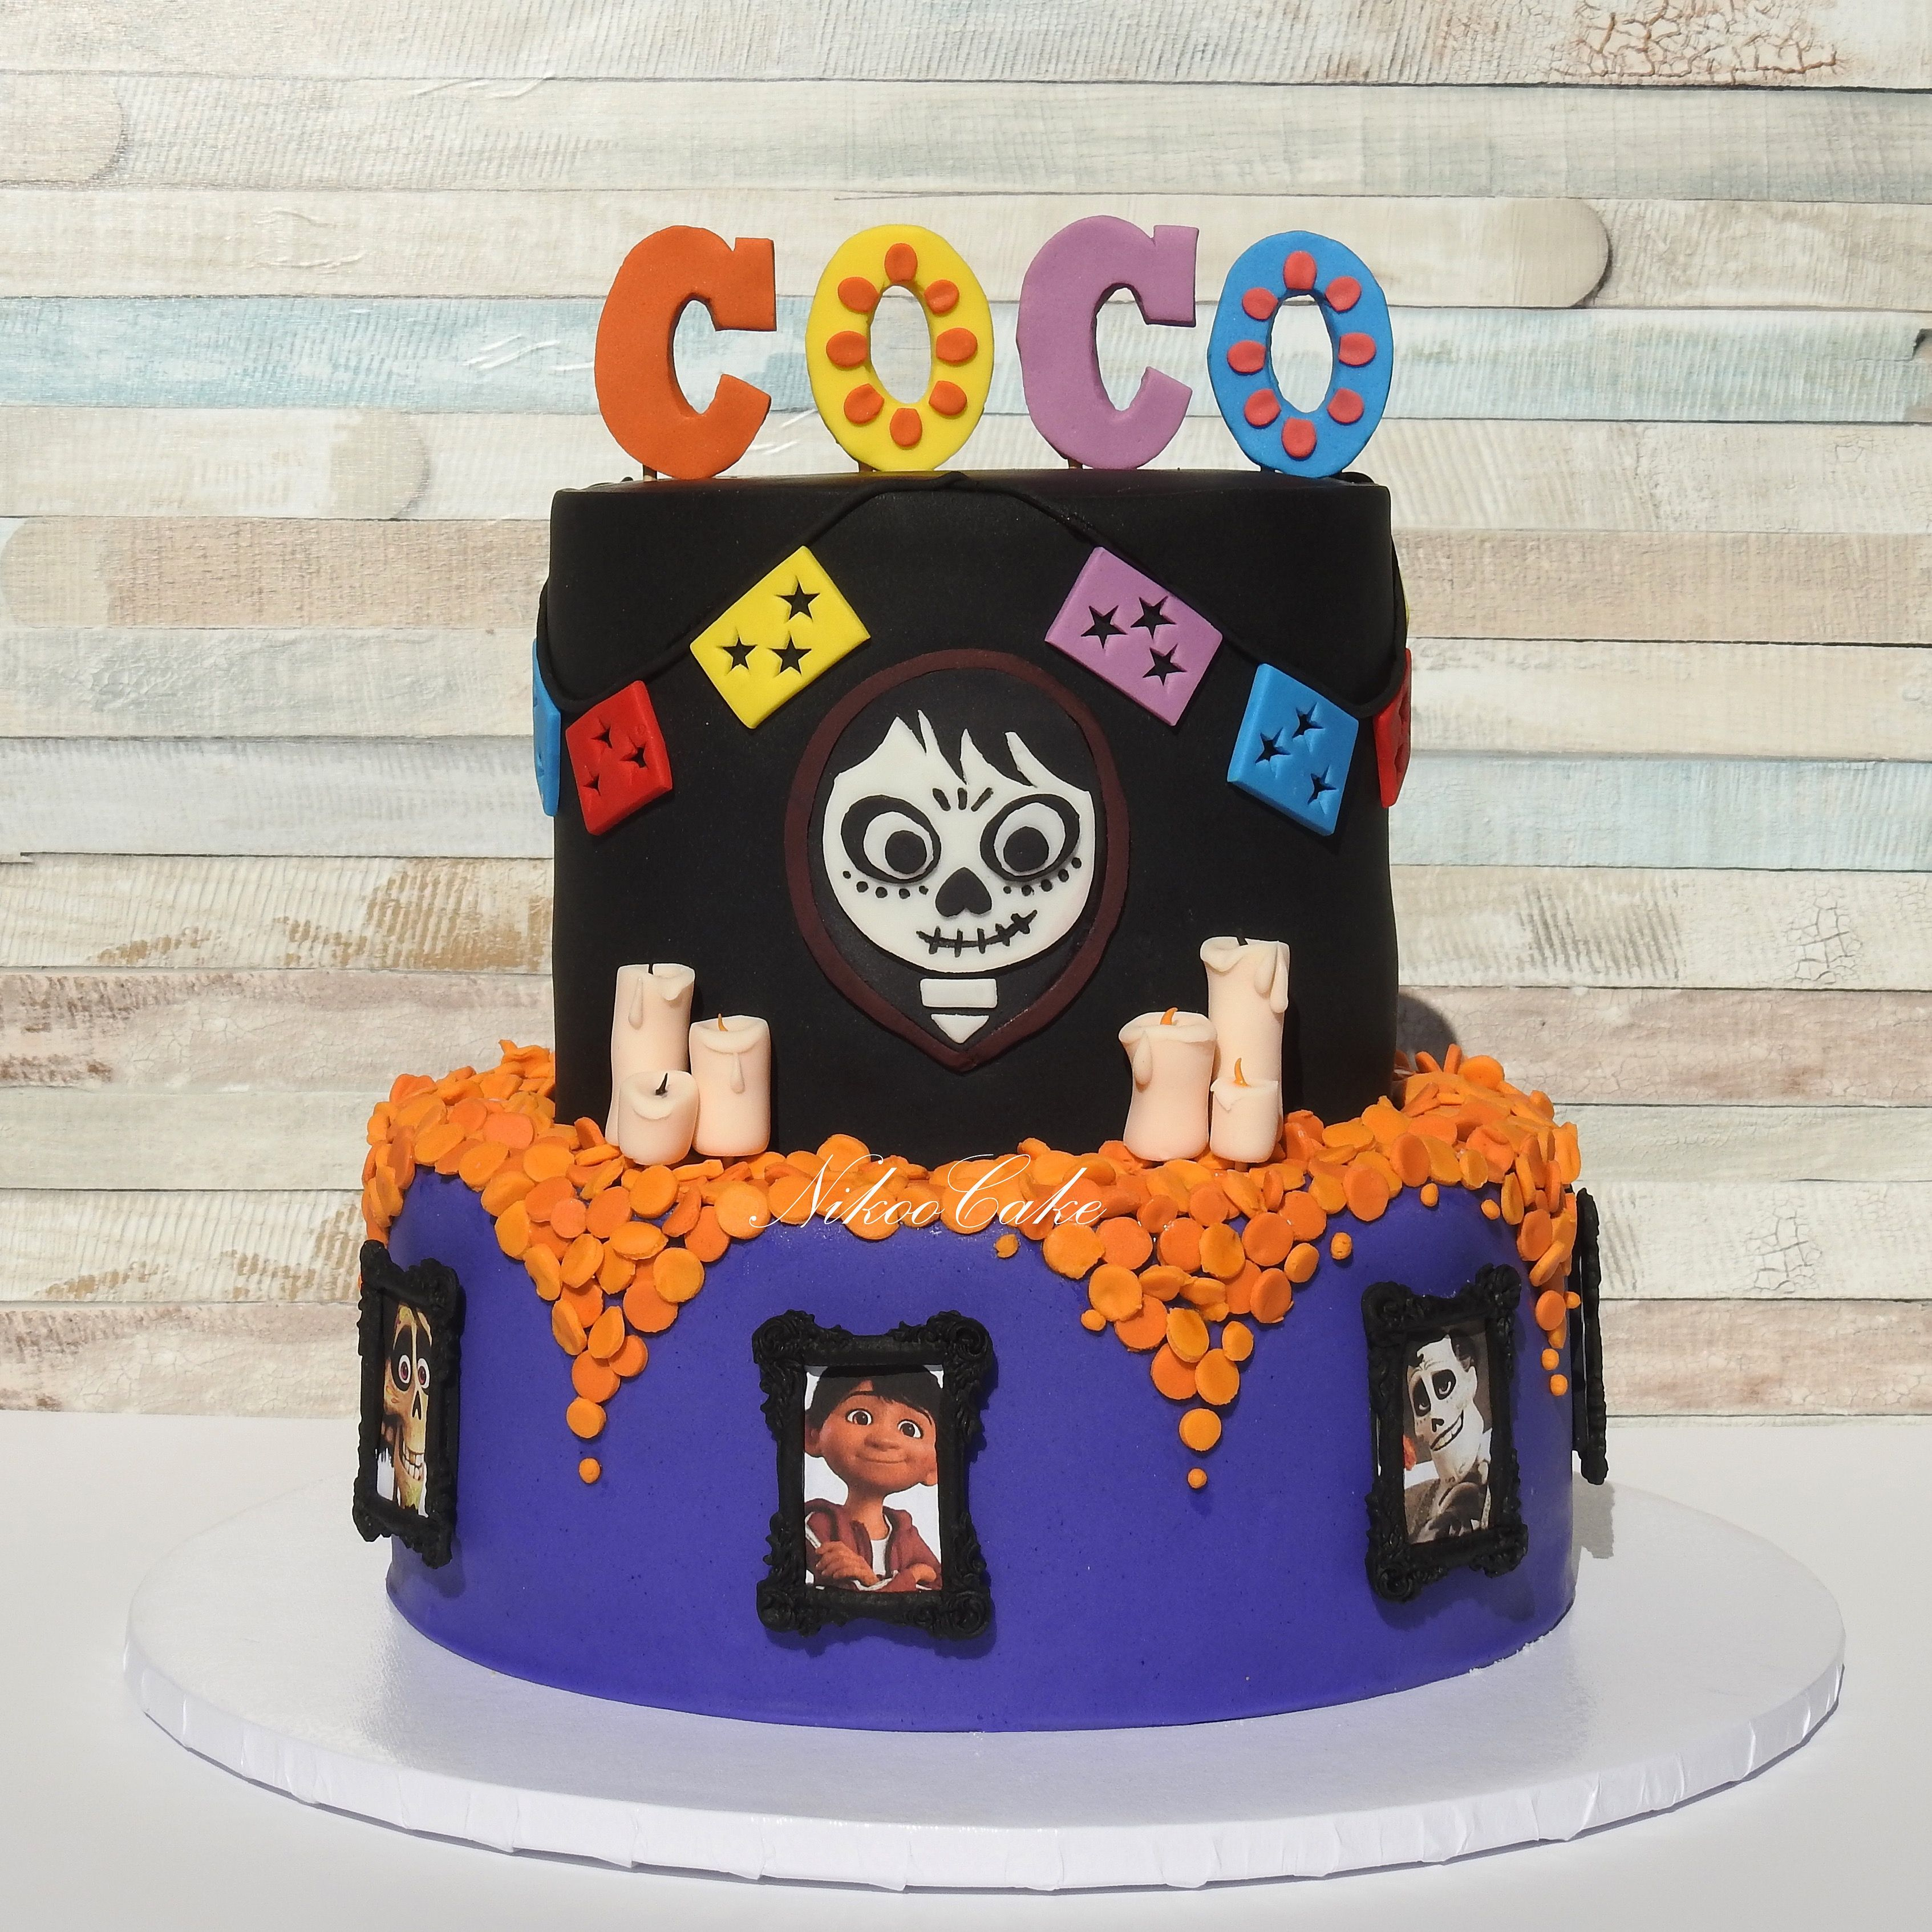 COCO Birthday Boy Cake Vanilla Sponge With Vanilla